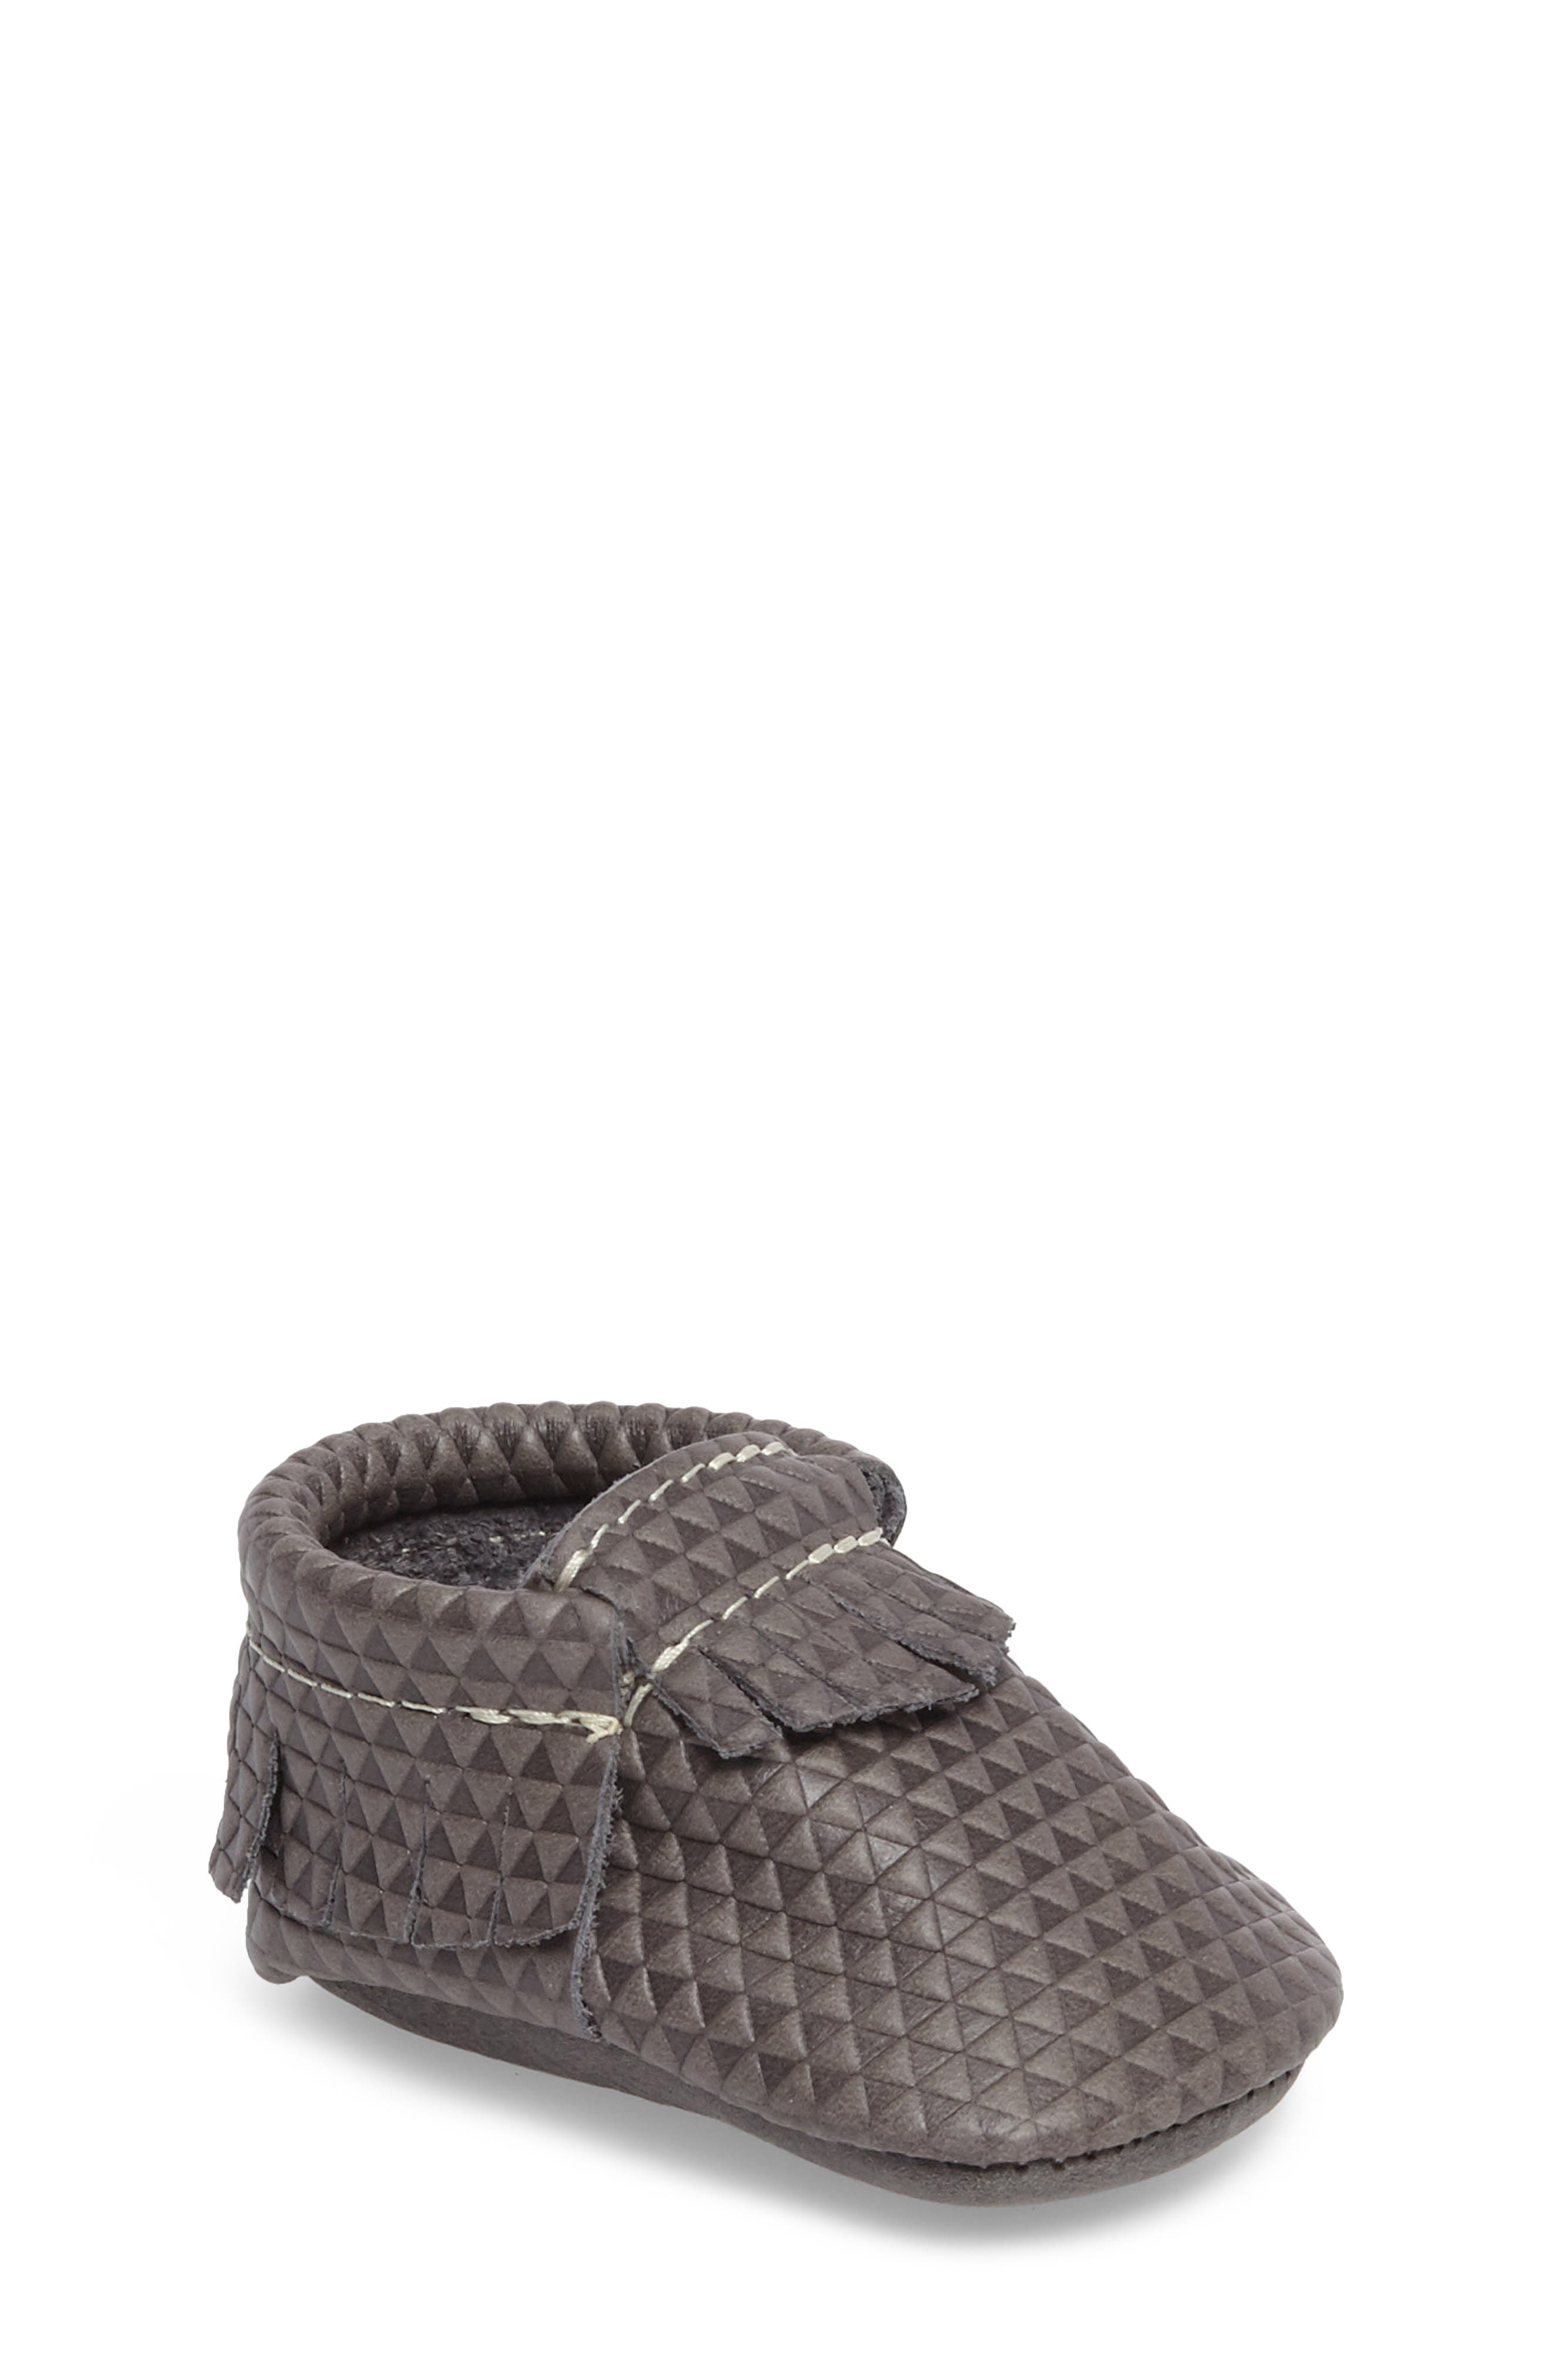 Triangles Print Moccasin,                             Main thumbnail 1, color,                             Triangles